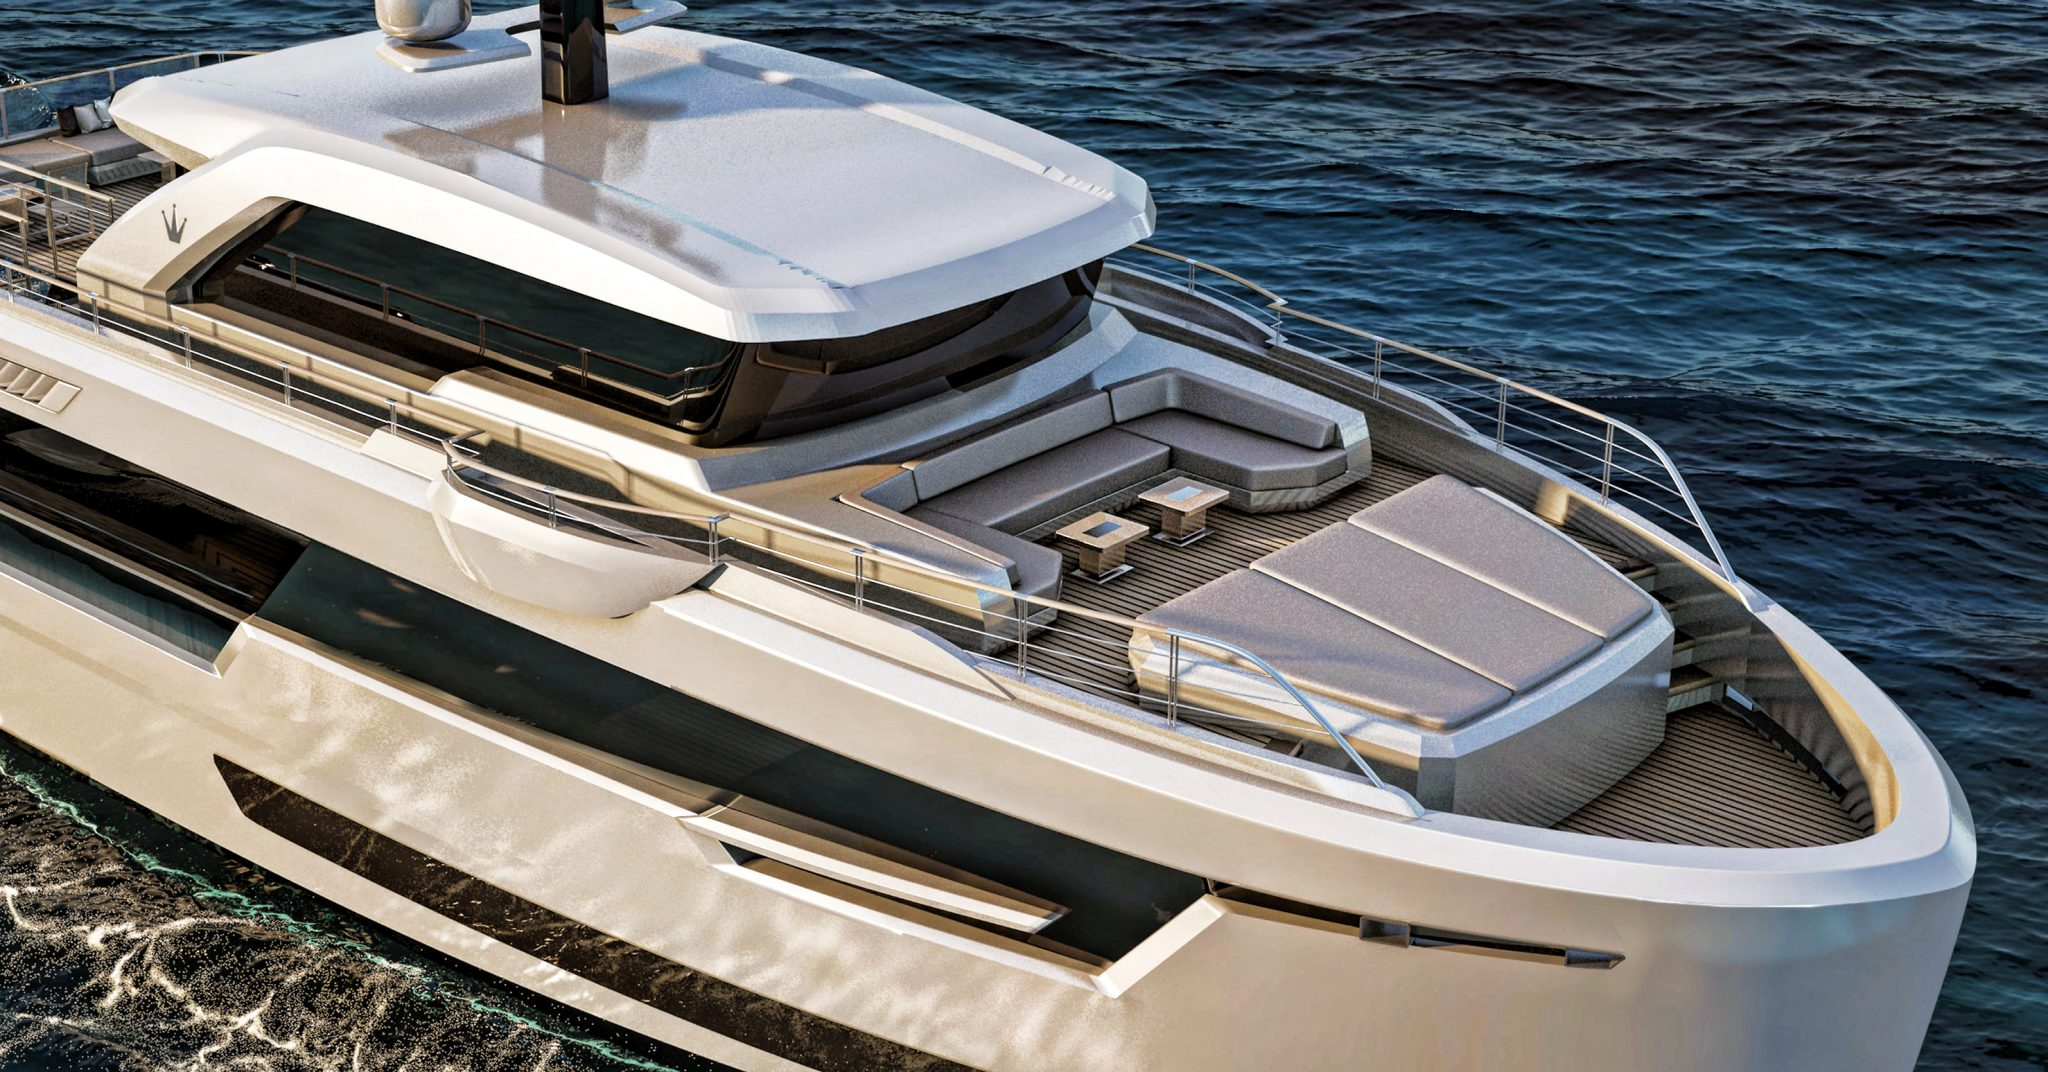 Bow render of ducale 88 with seating area